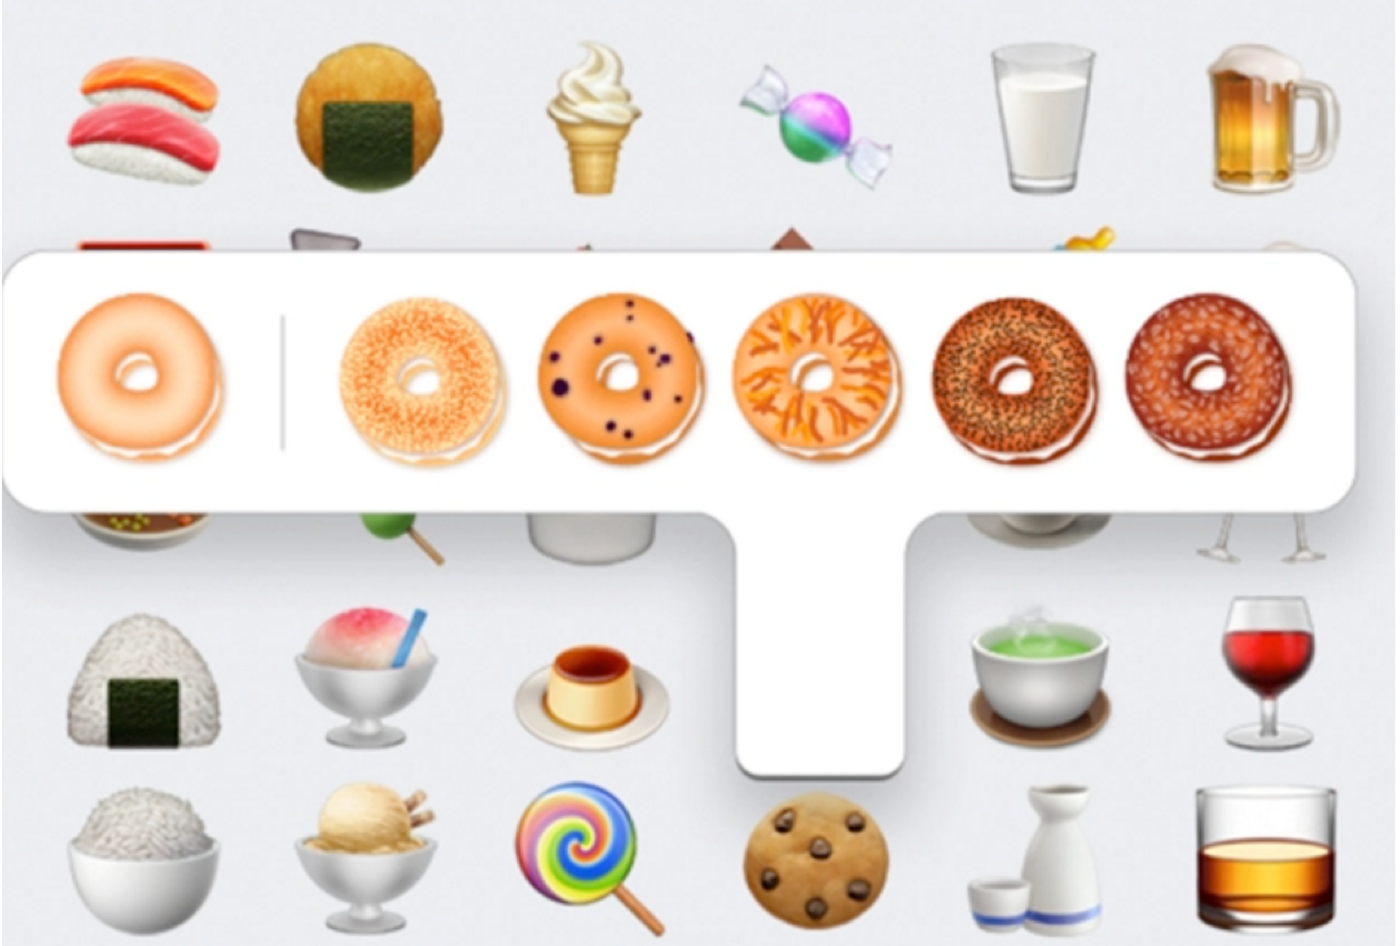 Image Courtesy Of New York Bakery Co.u0027s Proposal For A Bagel Emoji.